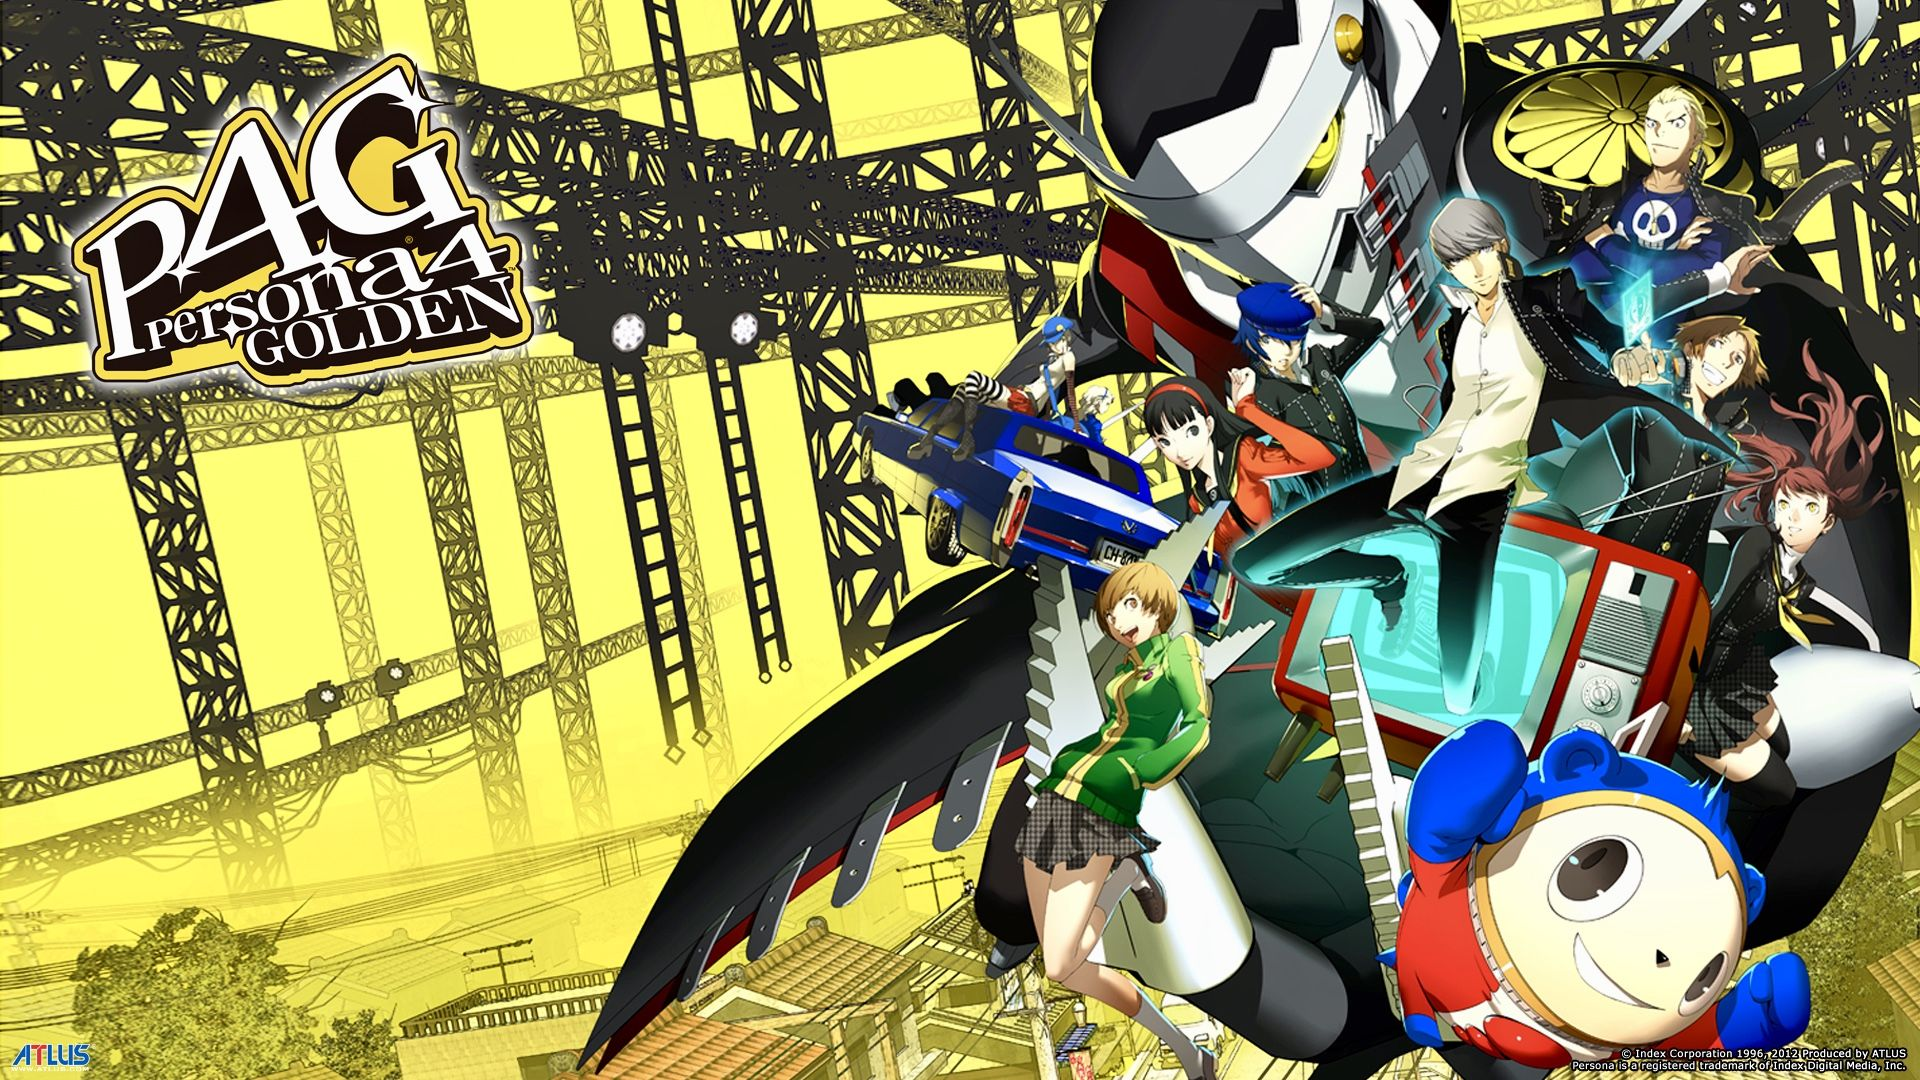 Persona 3 And 4 Ports To Current Gen Consoles Will Be Explored By Atlus Https Gamingbolt Com Persona 3 And 4 Ports To C Persona 4 Wallpaper Persona 4 Persona